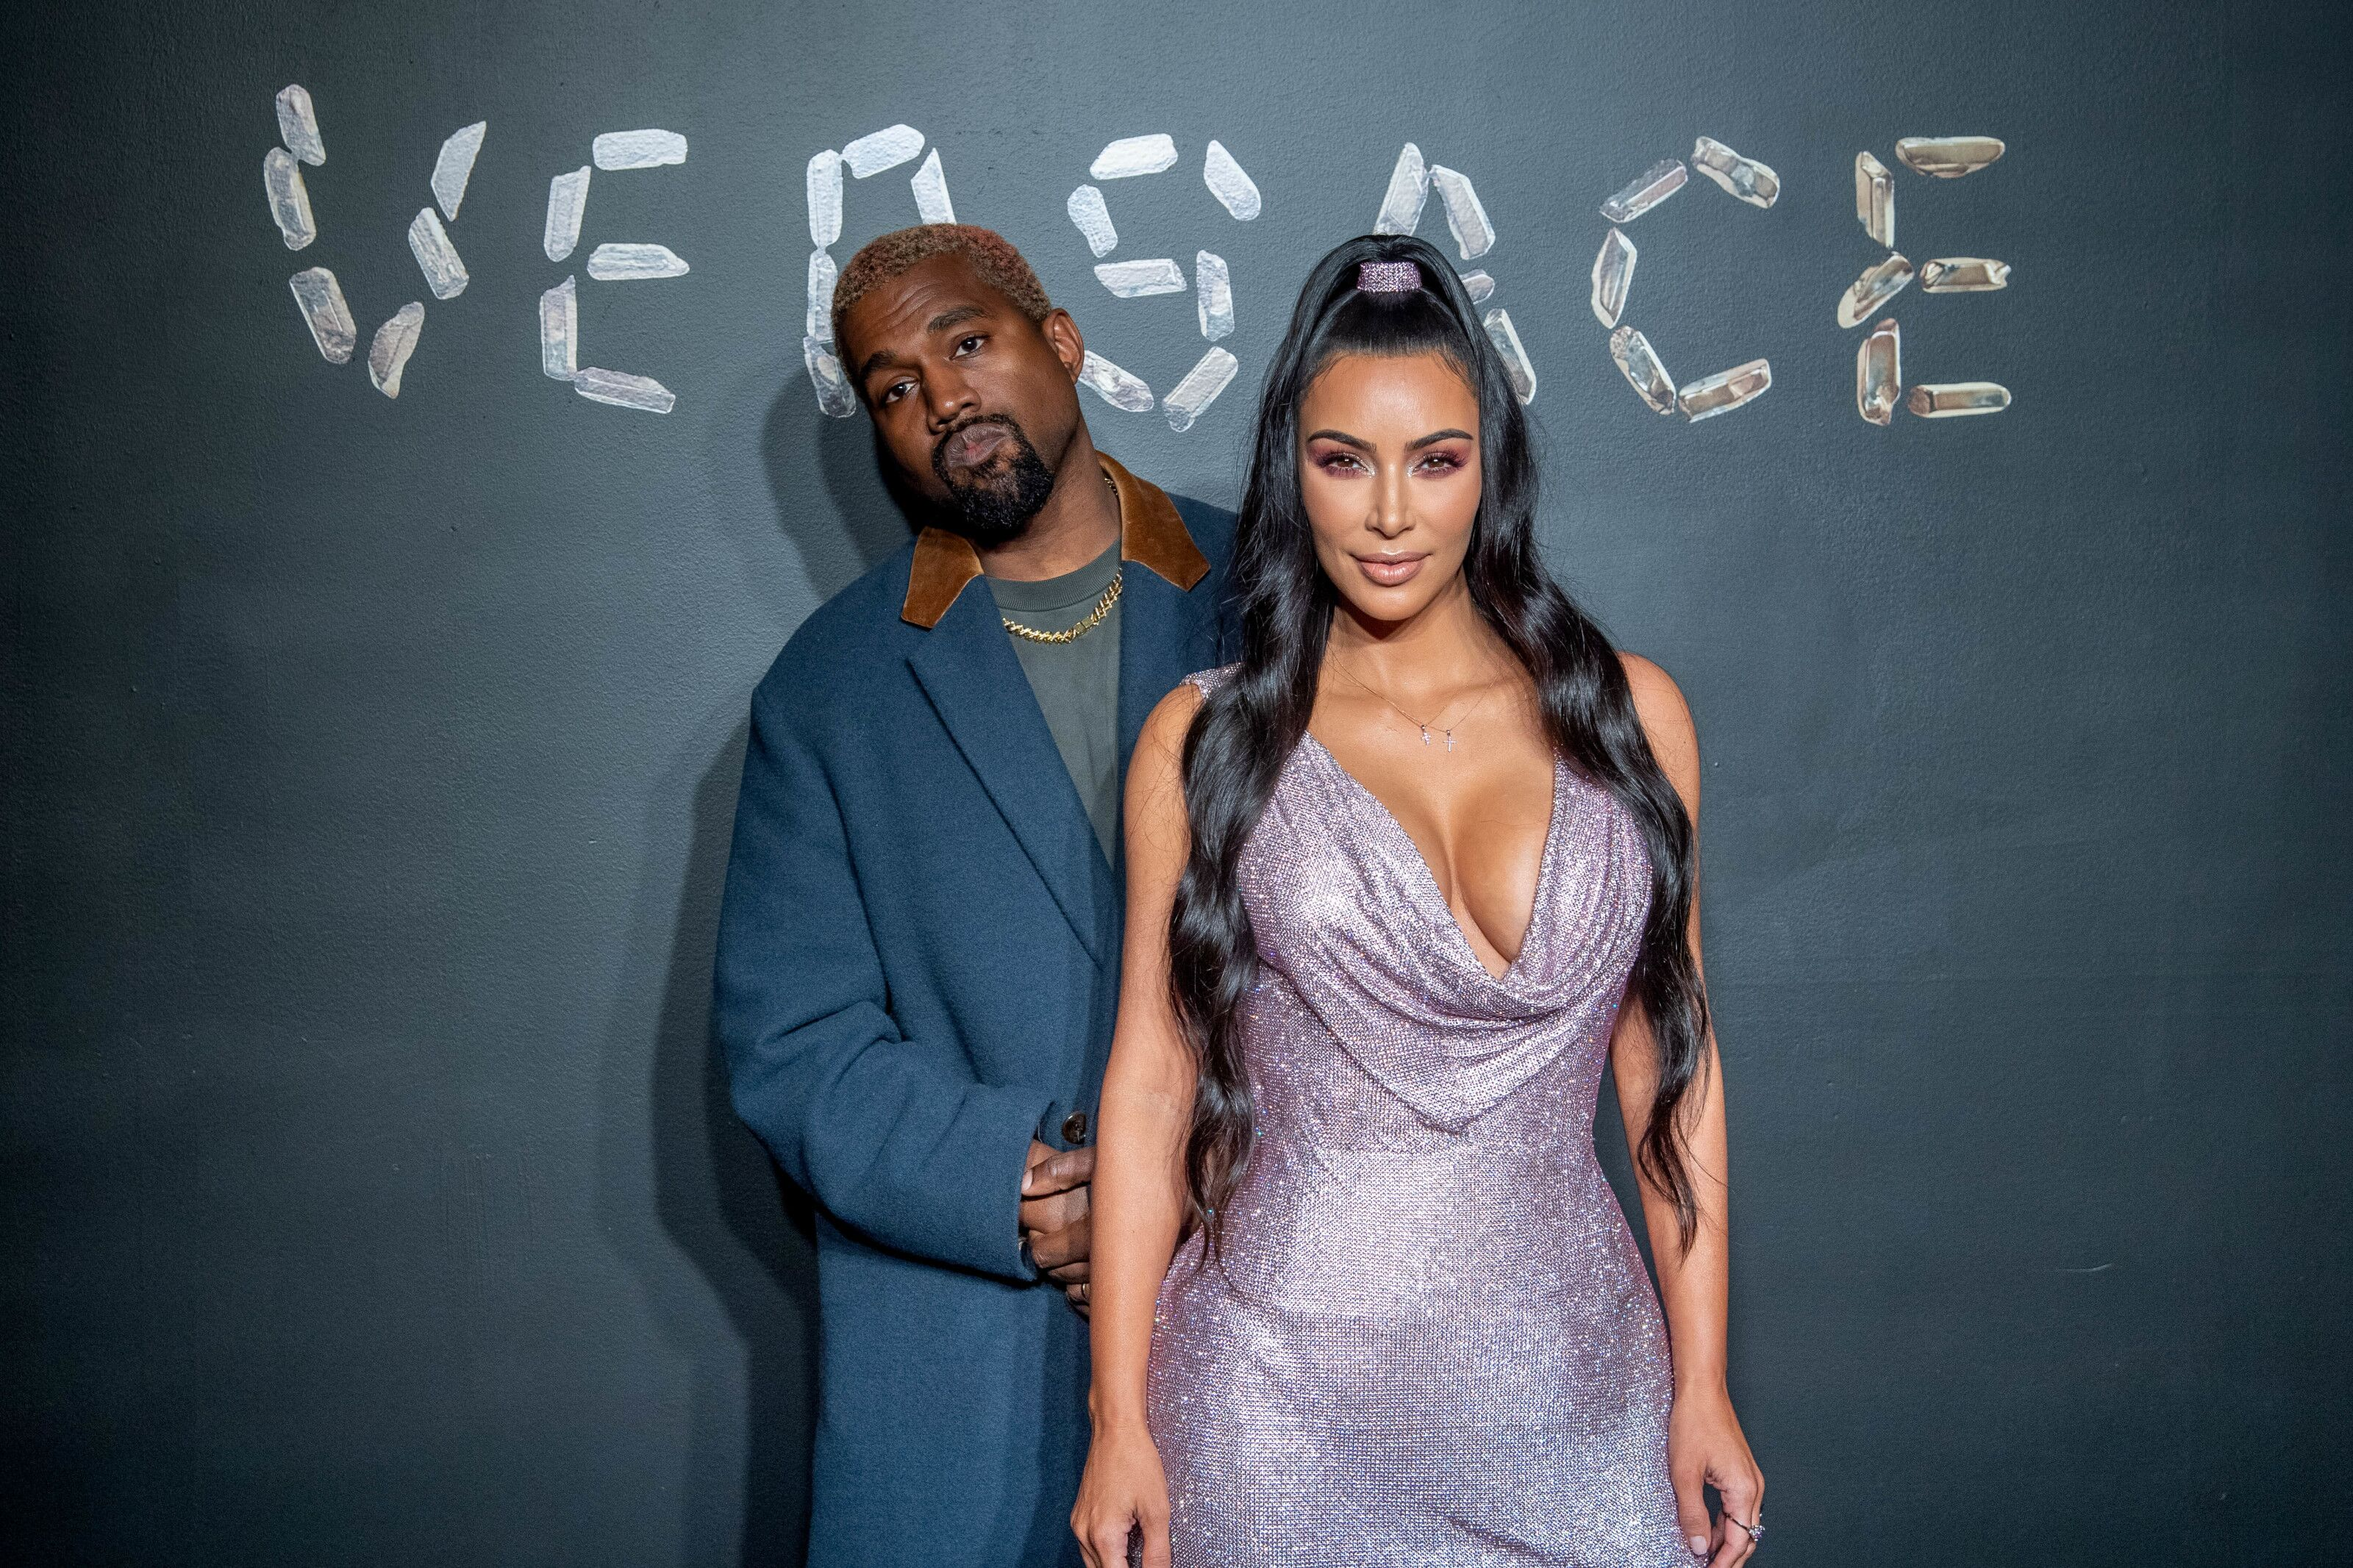 Kim Kardashian bares body in see-through nude style on Instagram amid plastic surgery and 'aging fake Cleopatra' shade